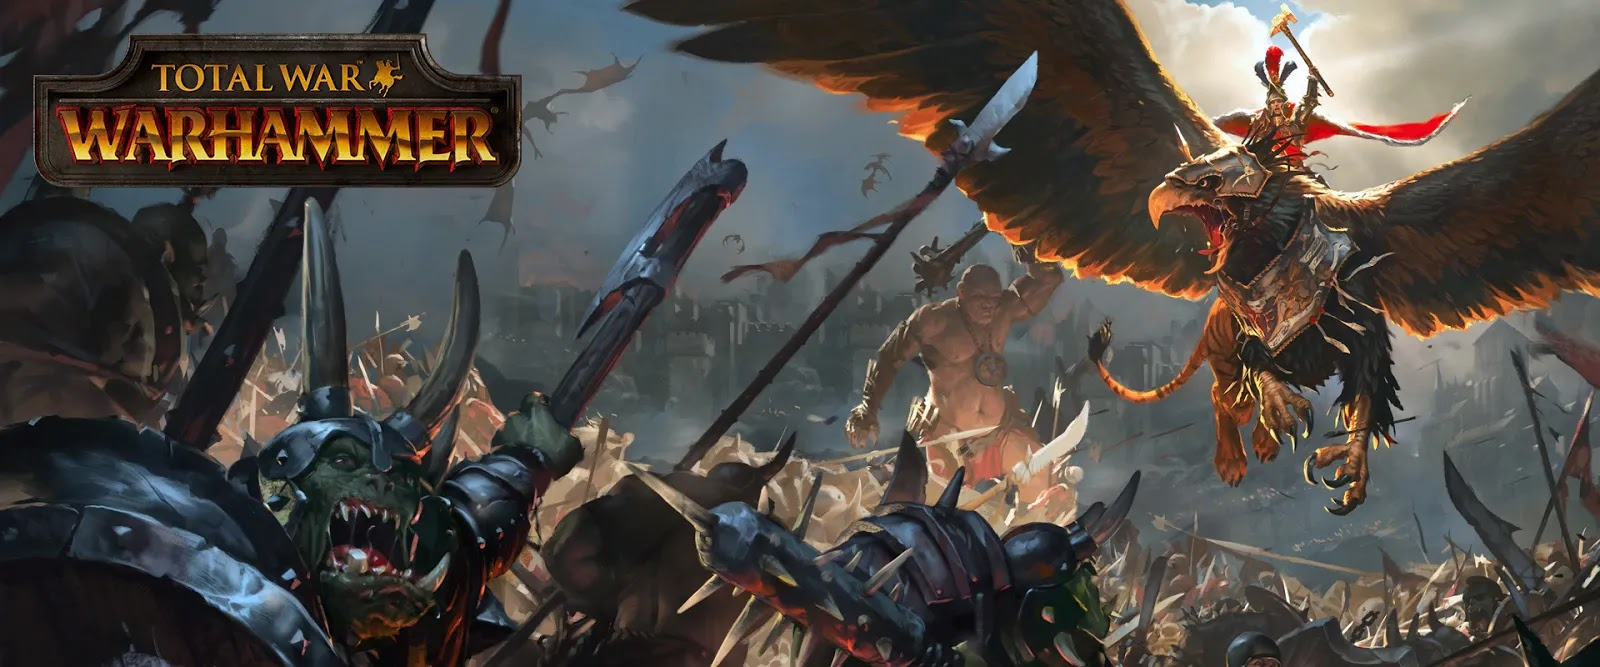 total-war-warhammer